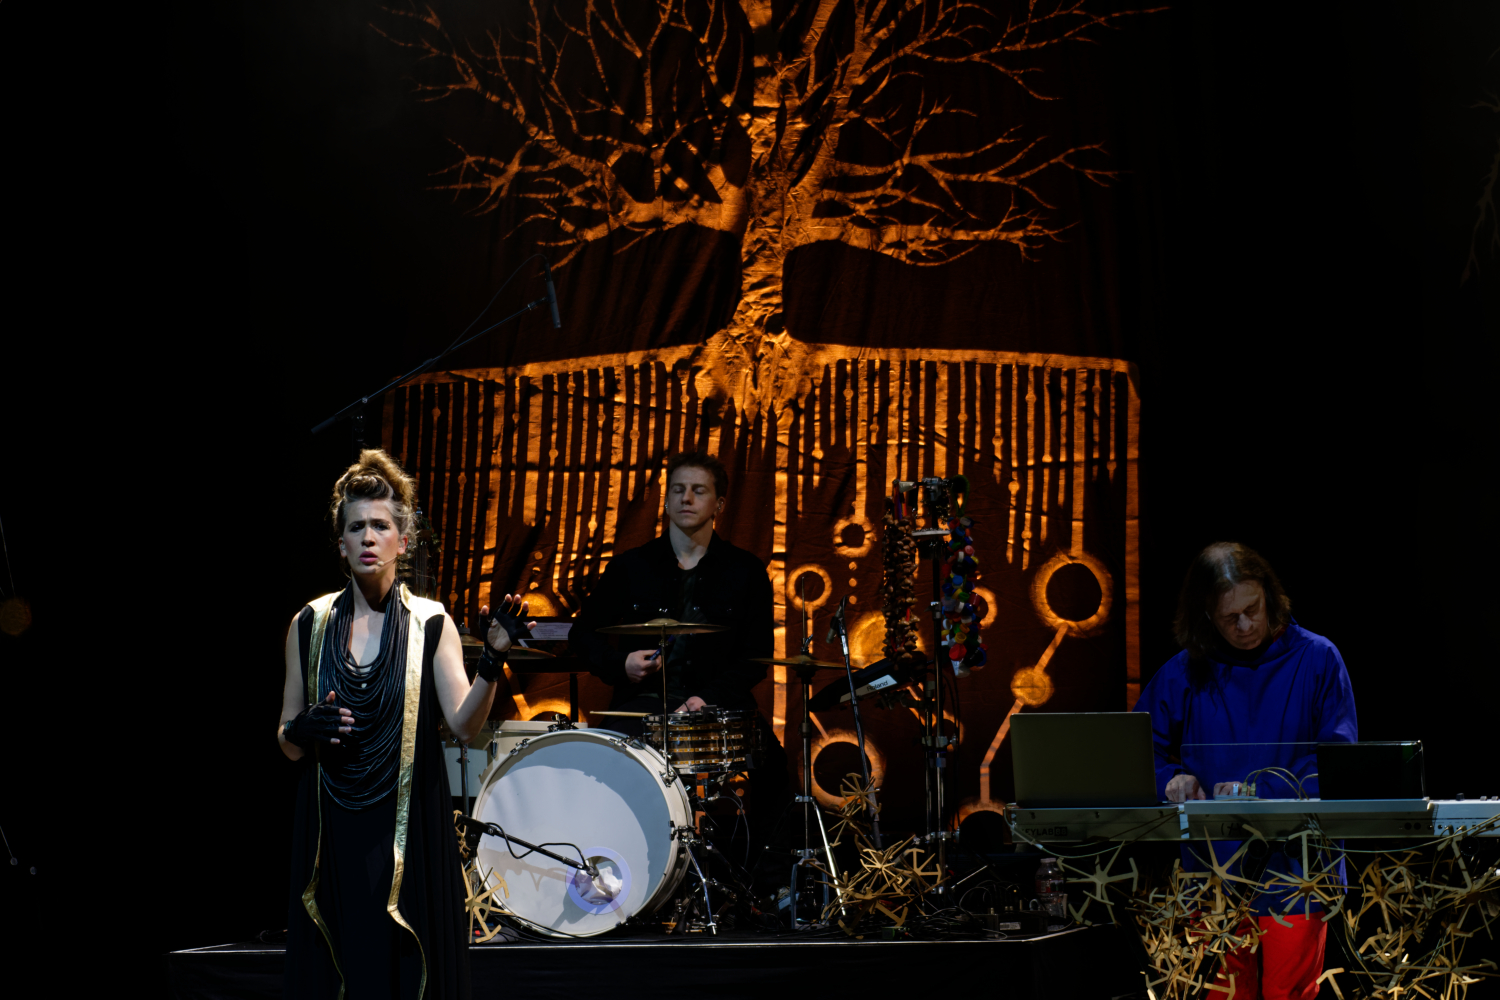 20190608 105 The Masonic - Imogen Heap.jpg